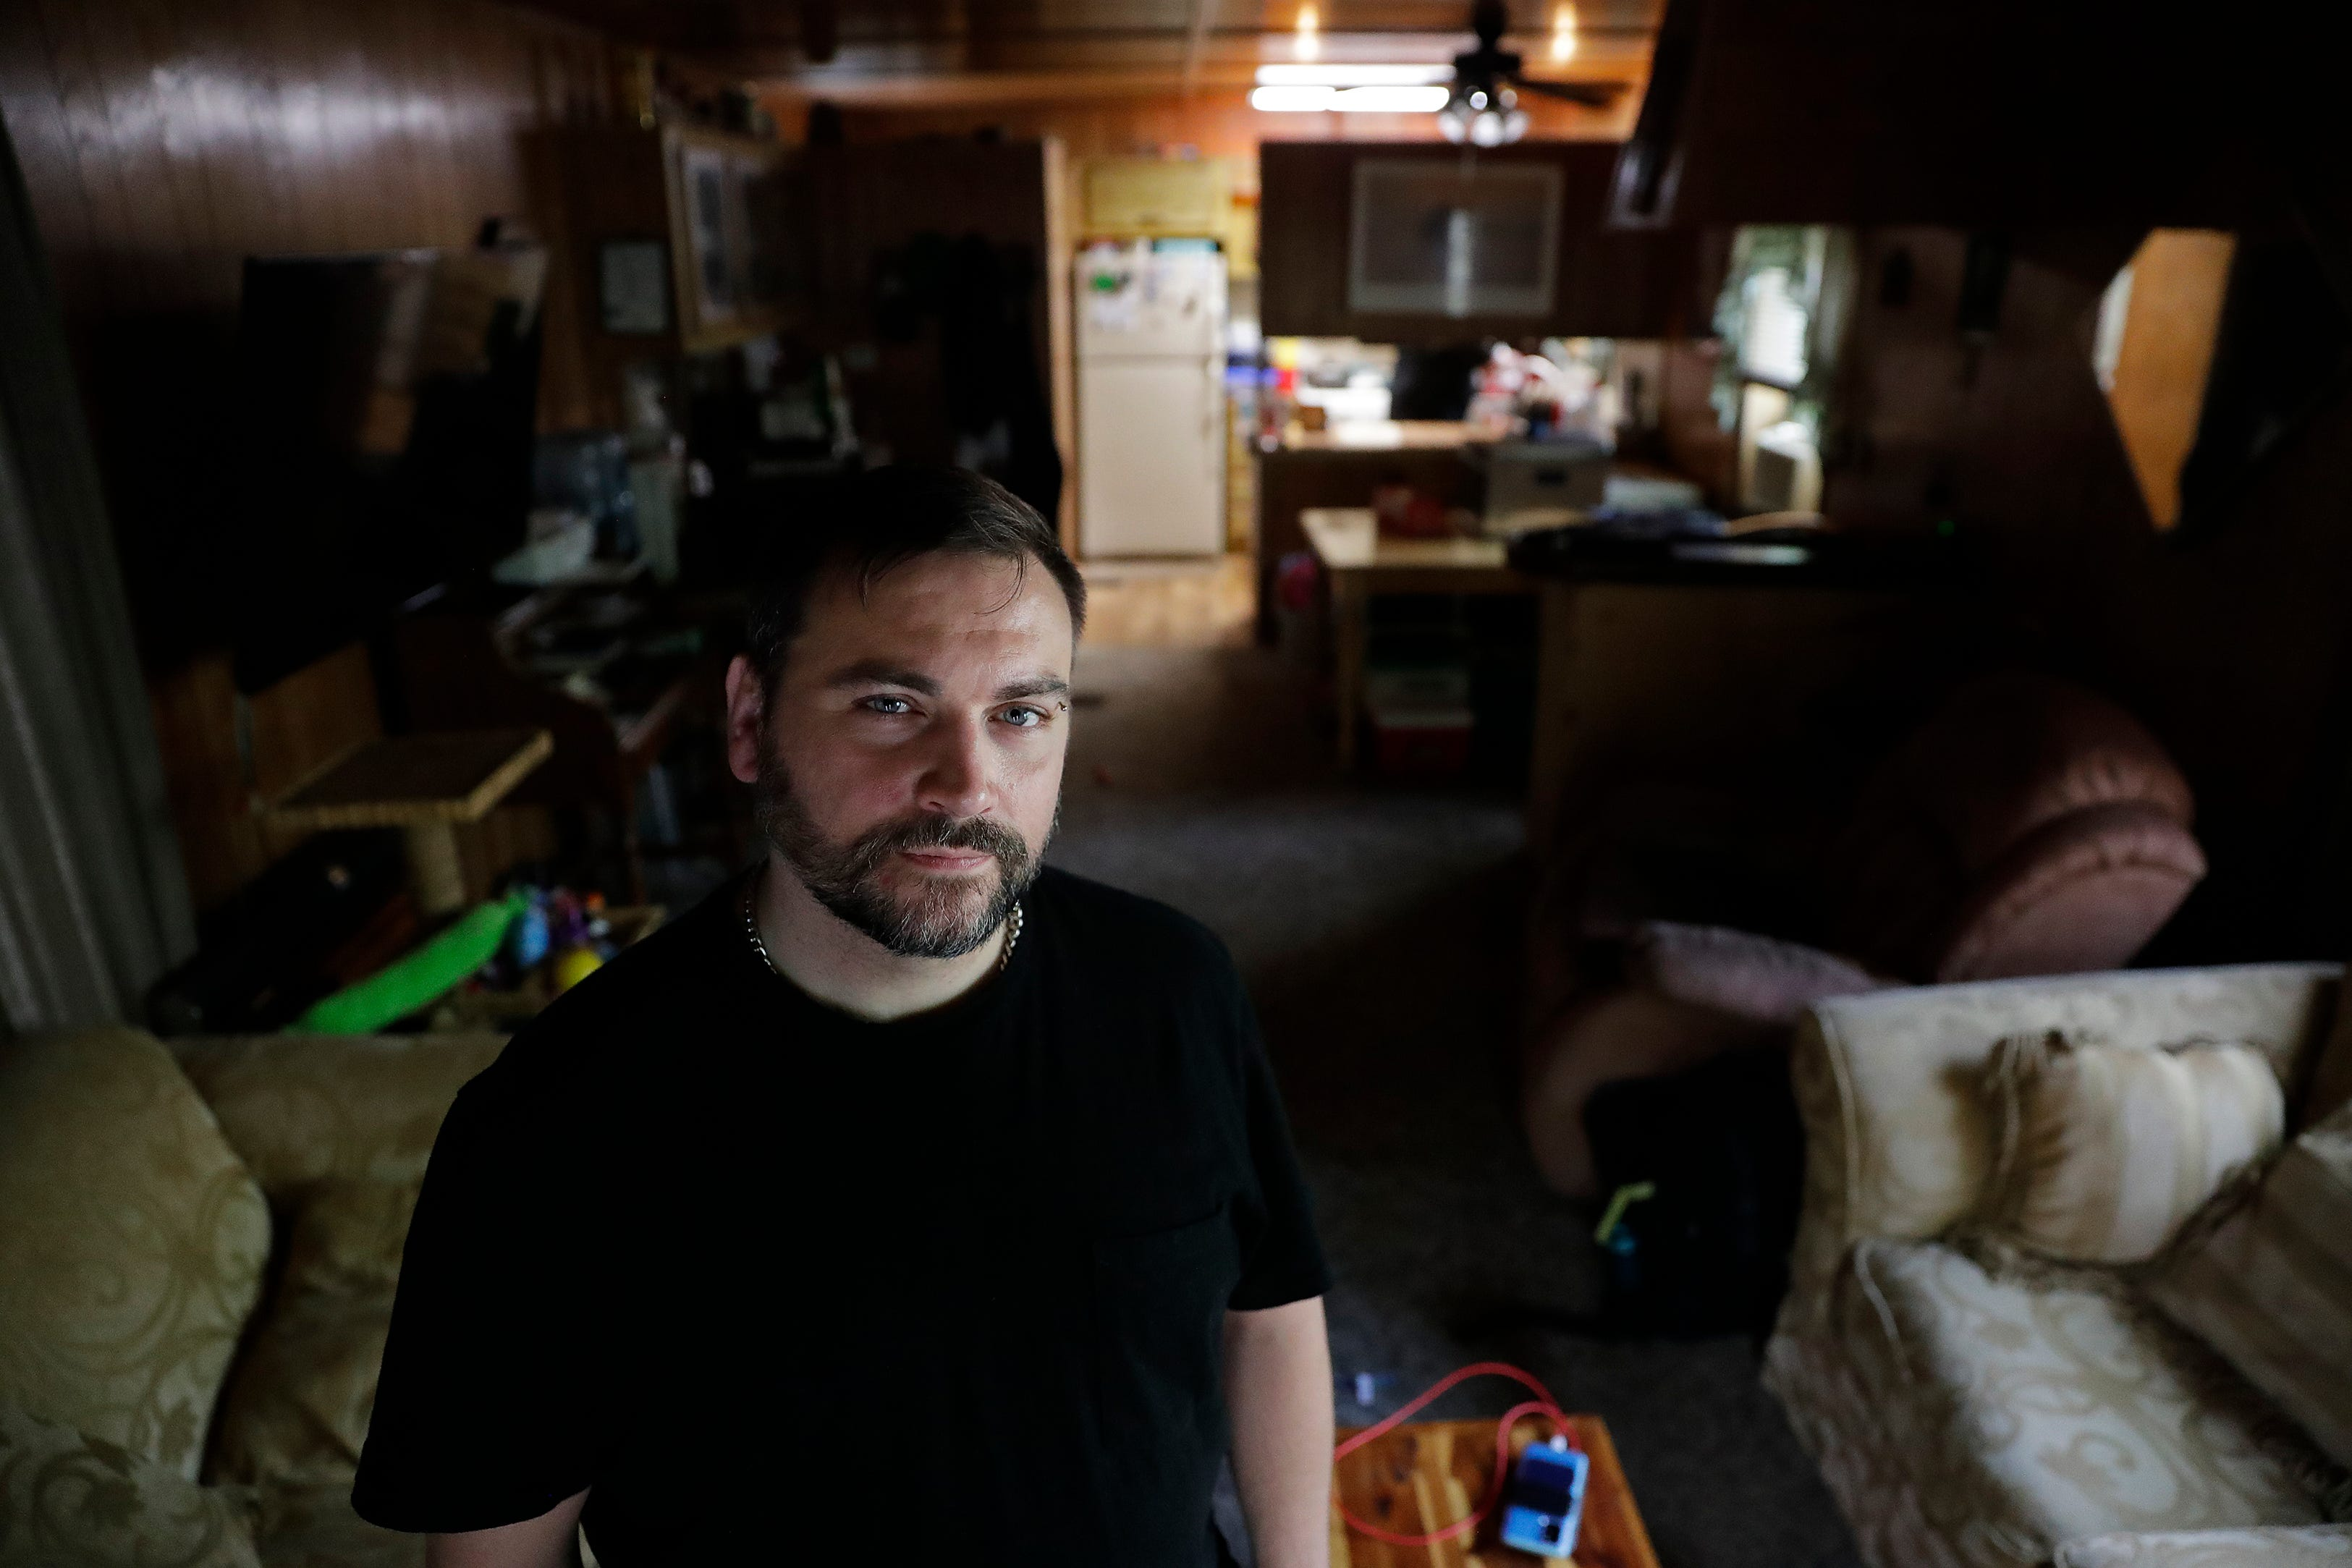 Chuck Andrews lives with a roommate in a rented trailer home in Menasha. The 35-year-old traffic coordinator for Woodward Radio Group has been looking for more than two years for an affordable apartment in hopes of spending more time with his 2-year-old daughter.